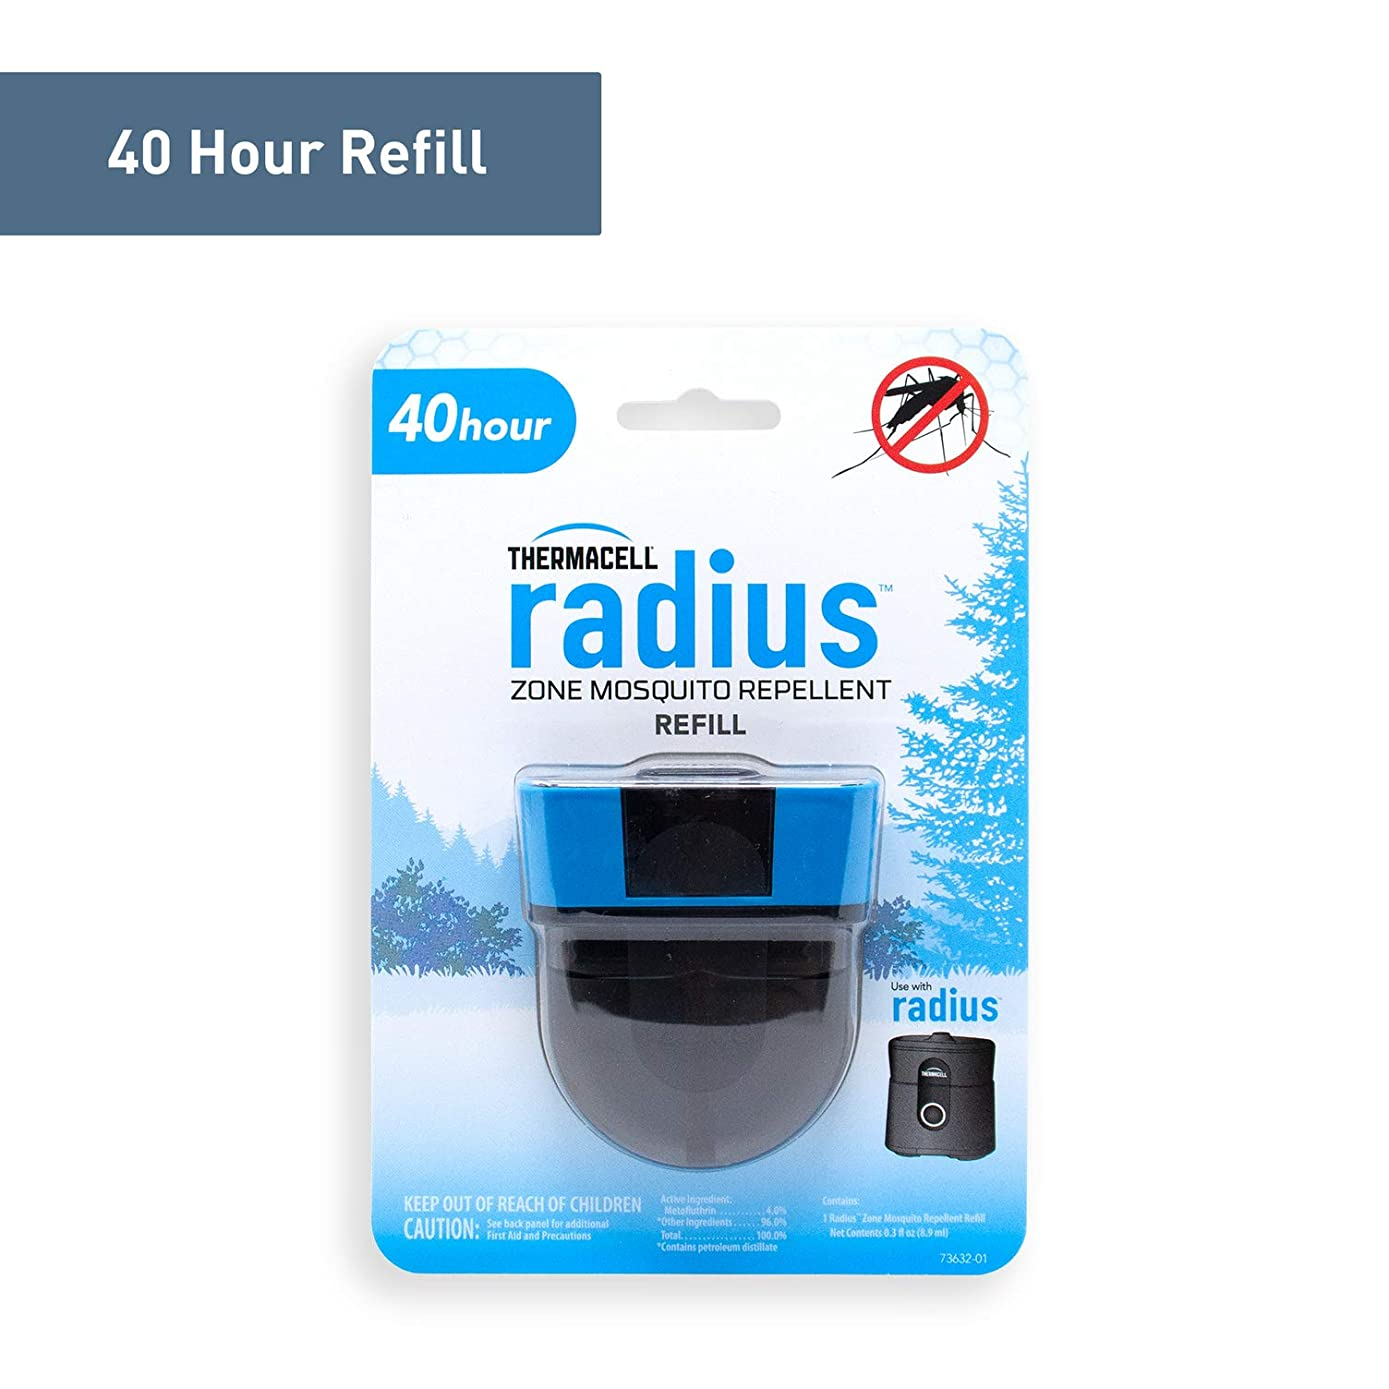 Radius Zone Mosquito Repellent Refills by Thermacell, Use with Radius Zone Mosquito Repellent; Fully Sealed Liquid Refill Keeps Insects at Bay; DEET-Free, Scent-Free, No Spray, No Mess